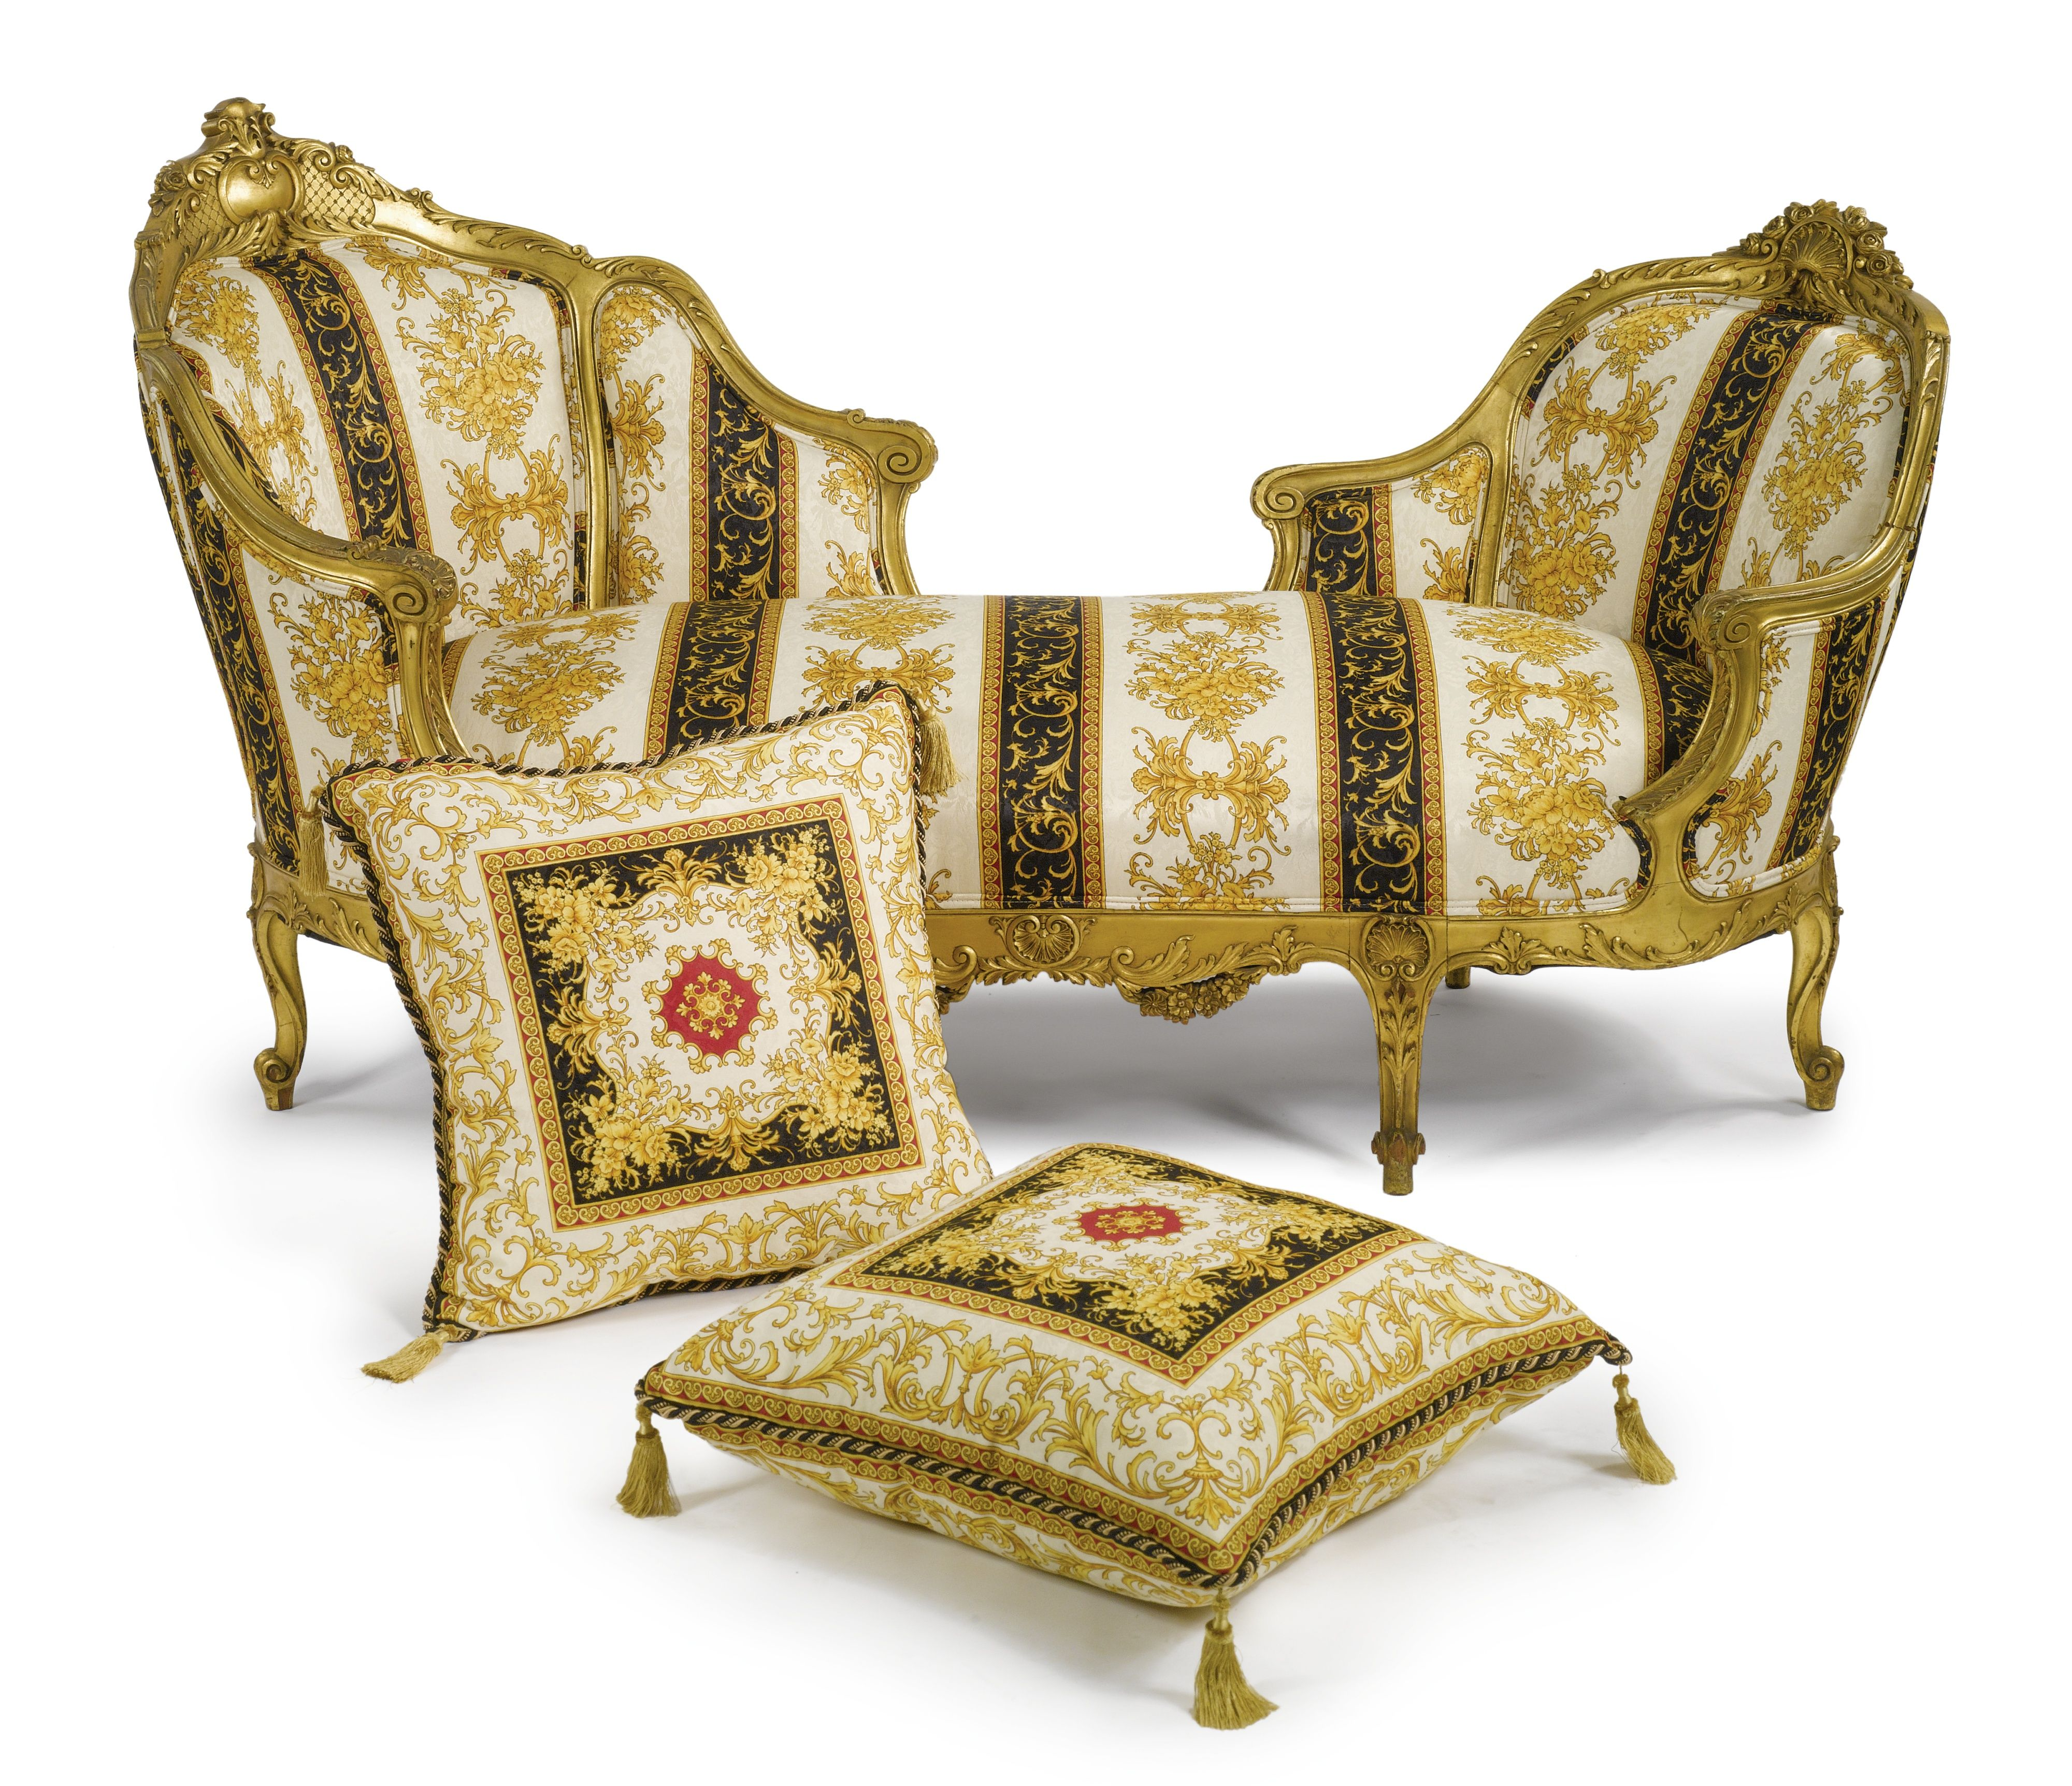 A Gianni Versace Fabric Upholstered Carved Giltwood Sofa Furniture Funky Furniture Universal Furniture